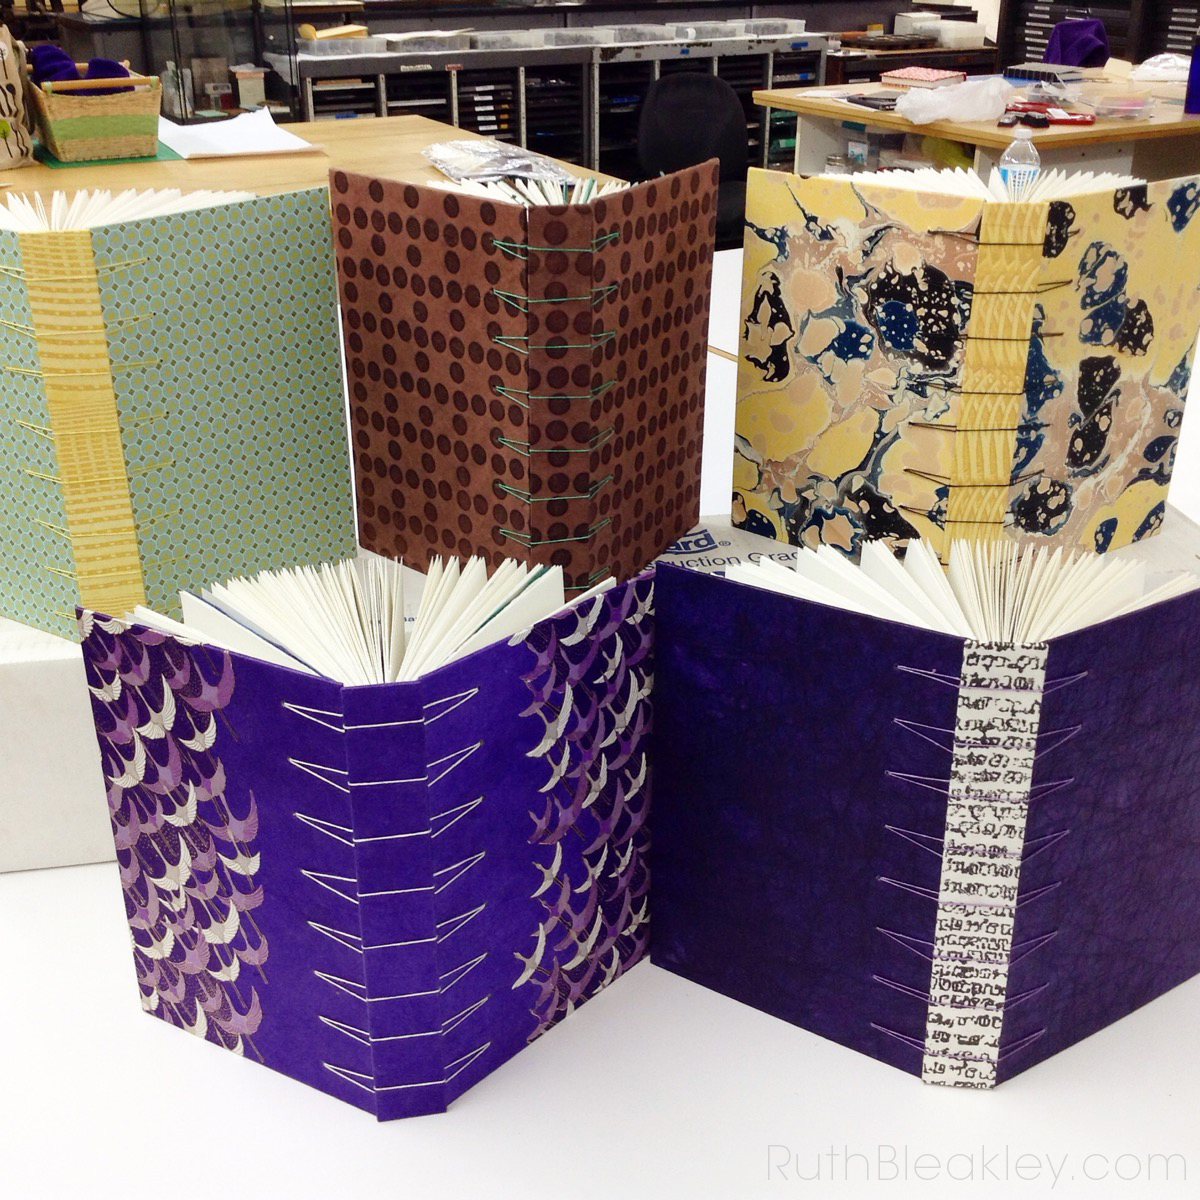 Secret Belgian binding book workshop taught by Holly Fouts